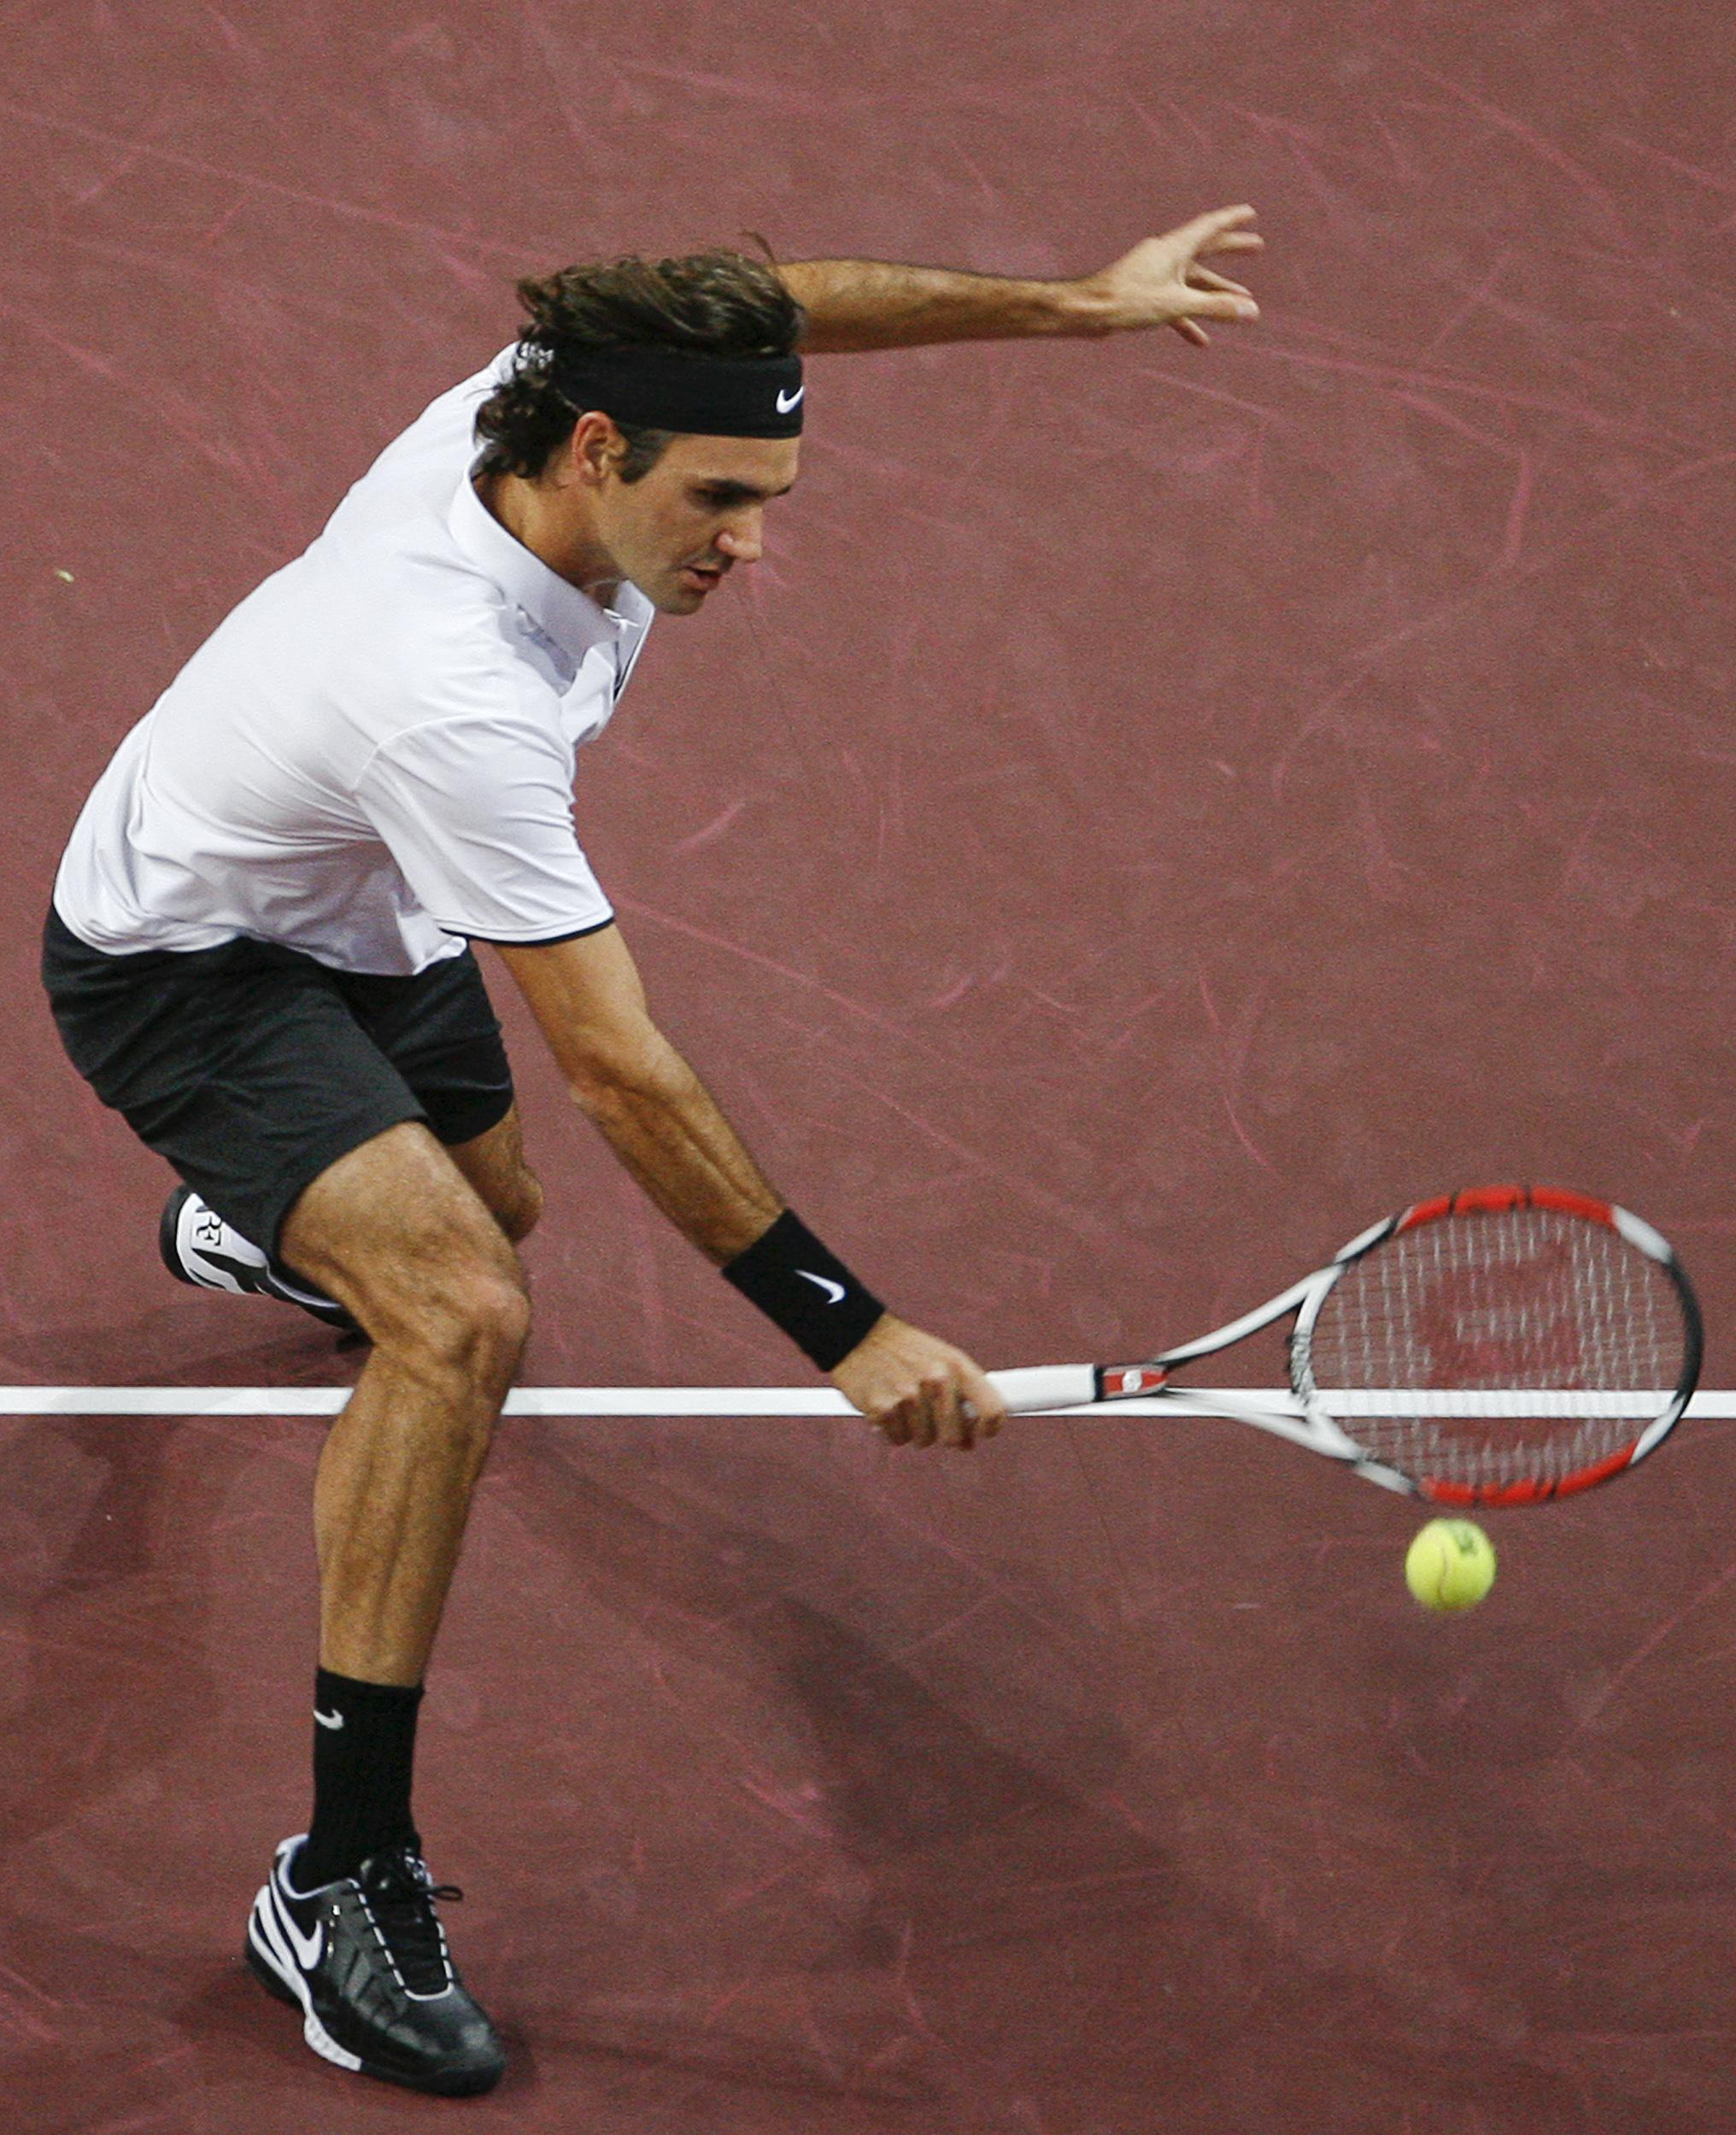 Switzerland's Roger Federer serves to Argentina's David Nalbandian during their final match at the Swiss Indoors ATP tennis tournament in Basel, Switz...